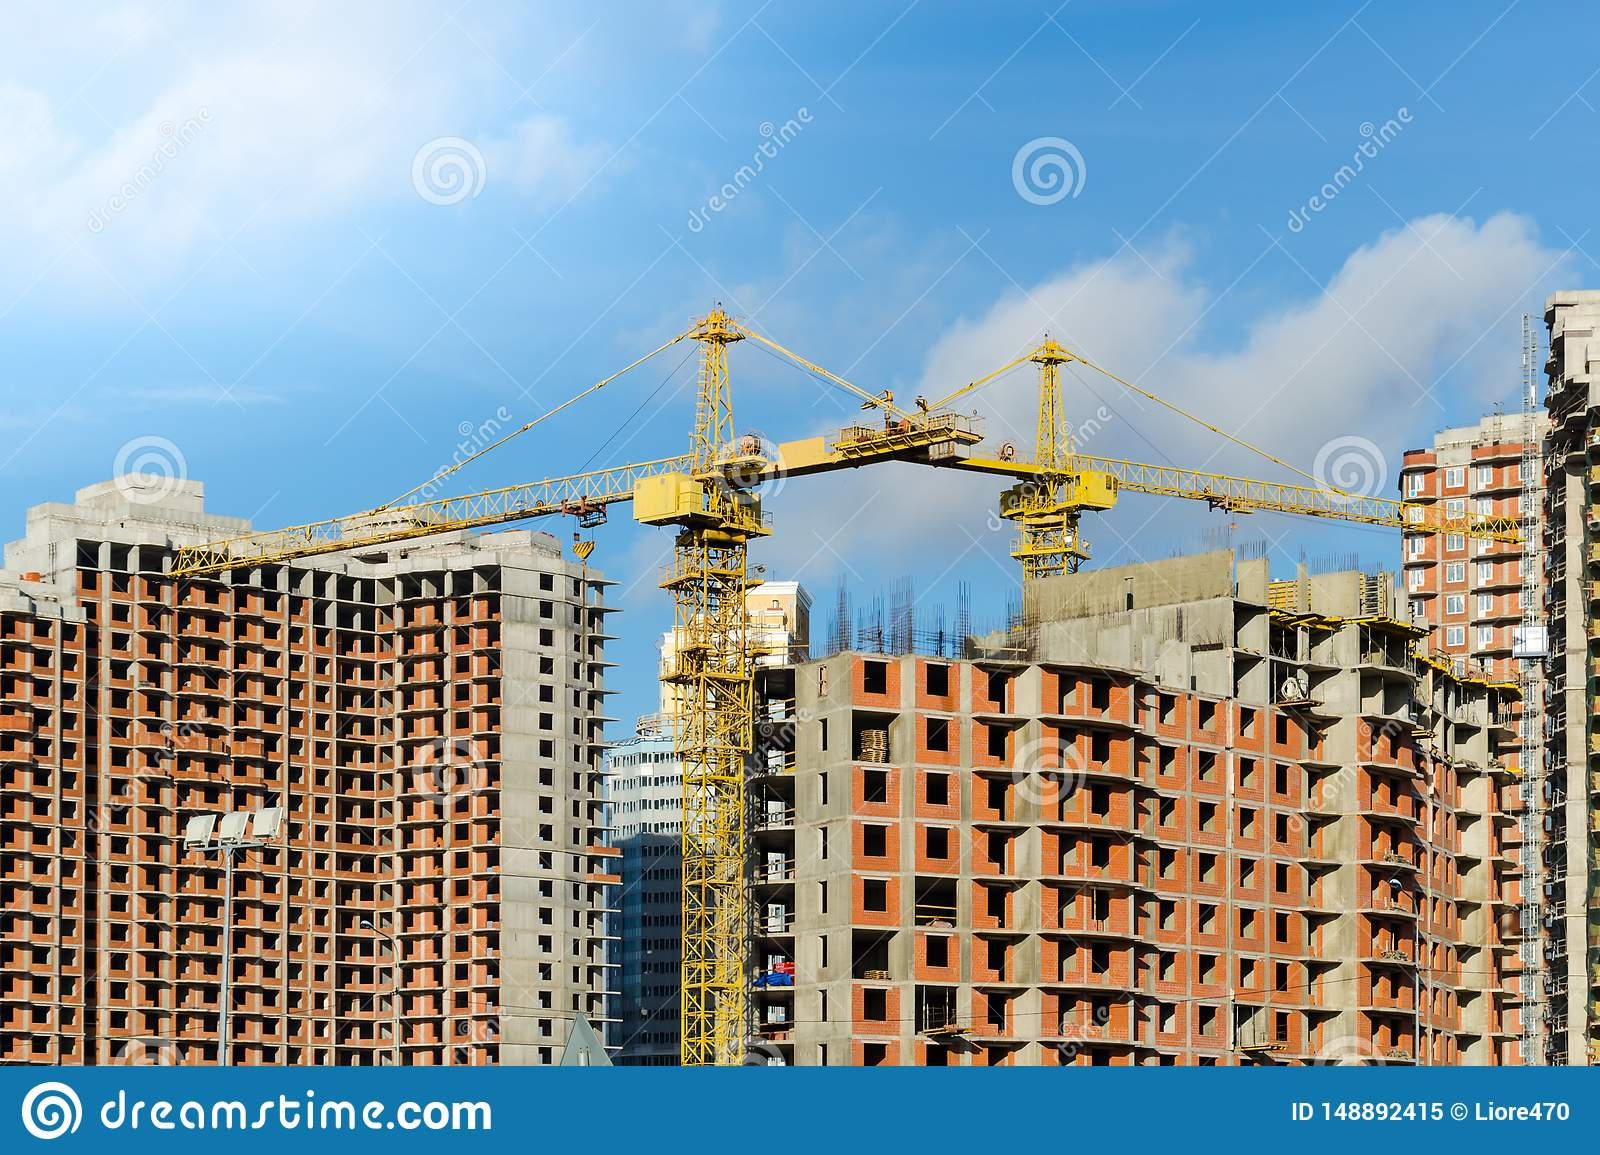 Two yellow construction cranes at the construction site of multi-storey brick houses against blue sky